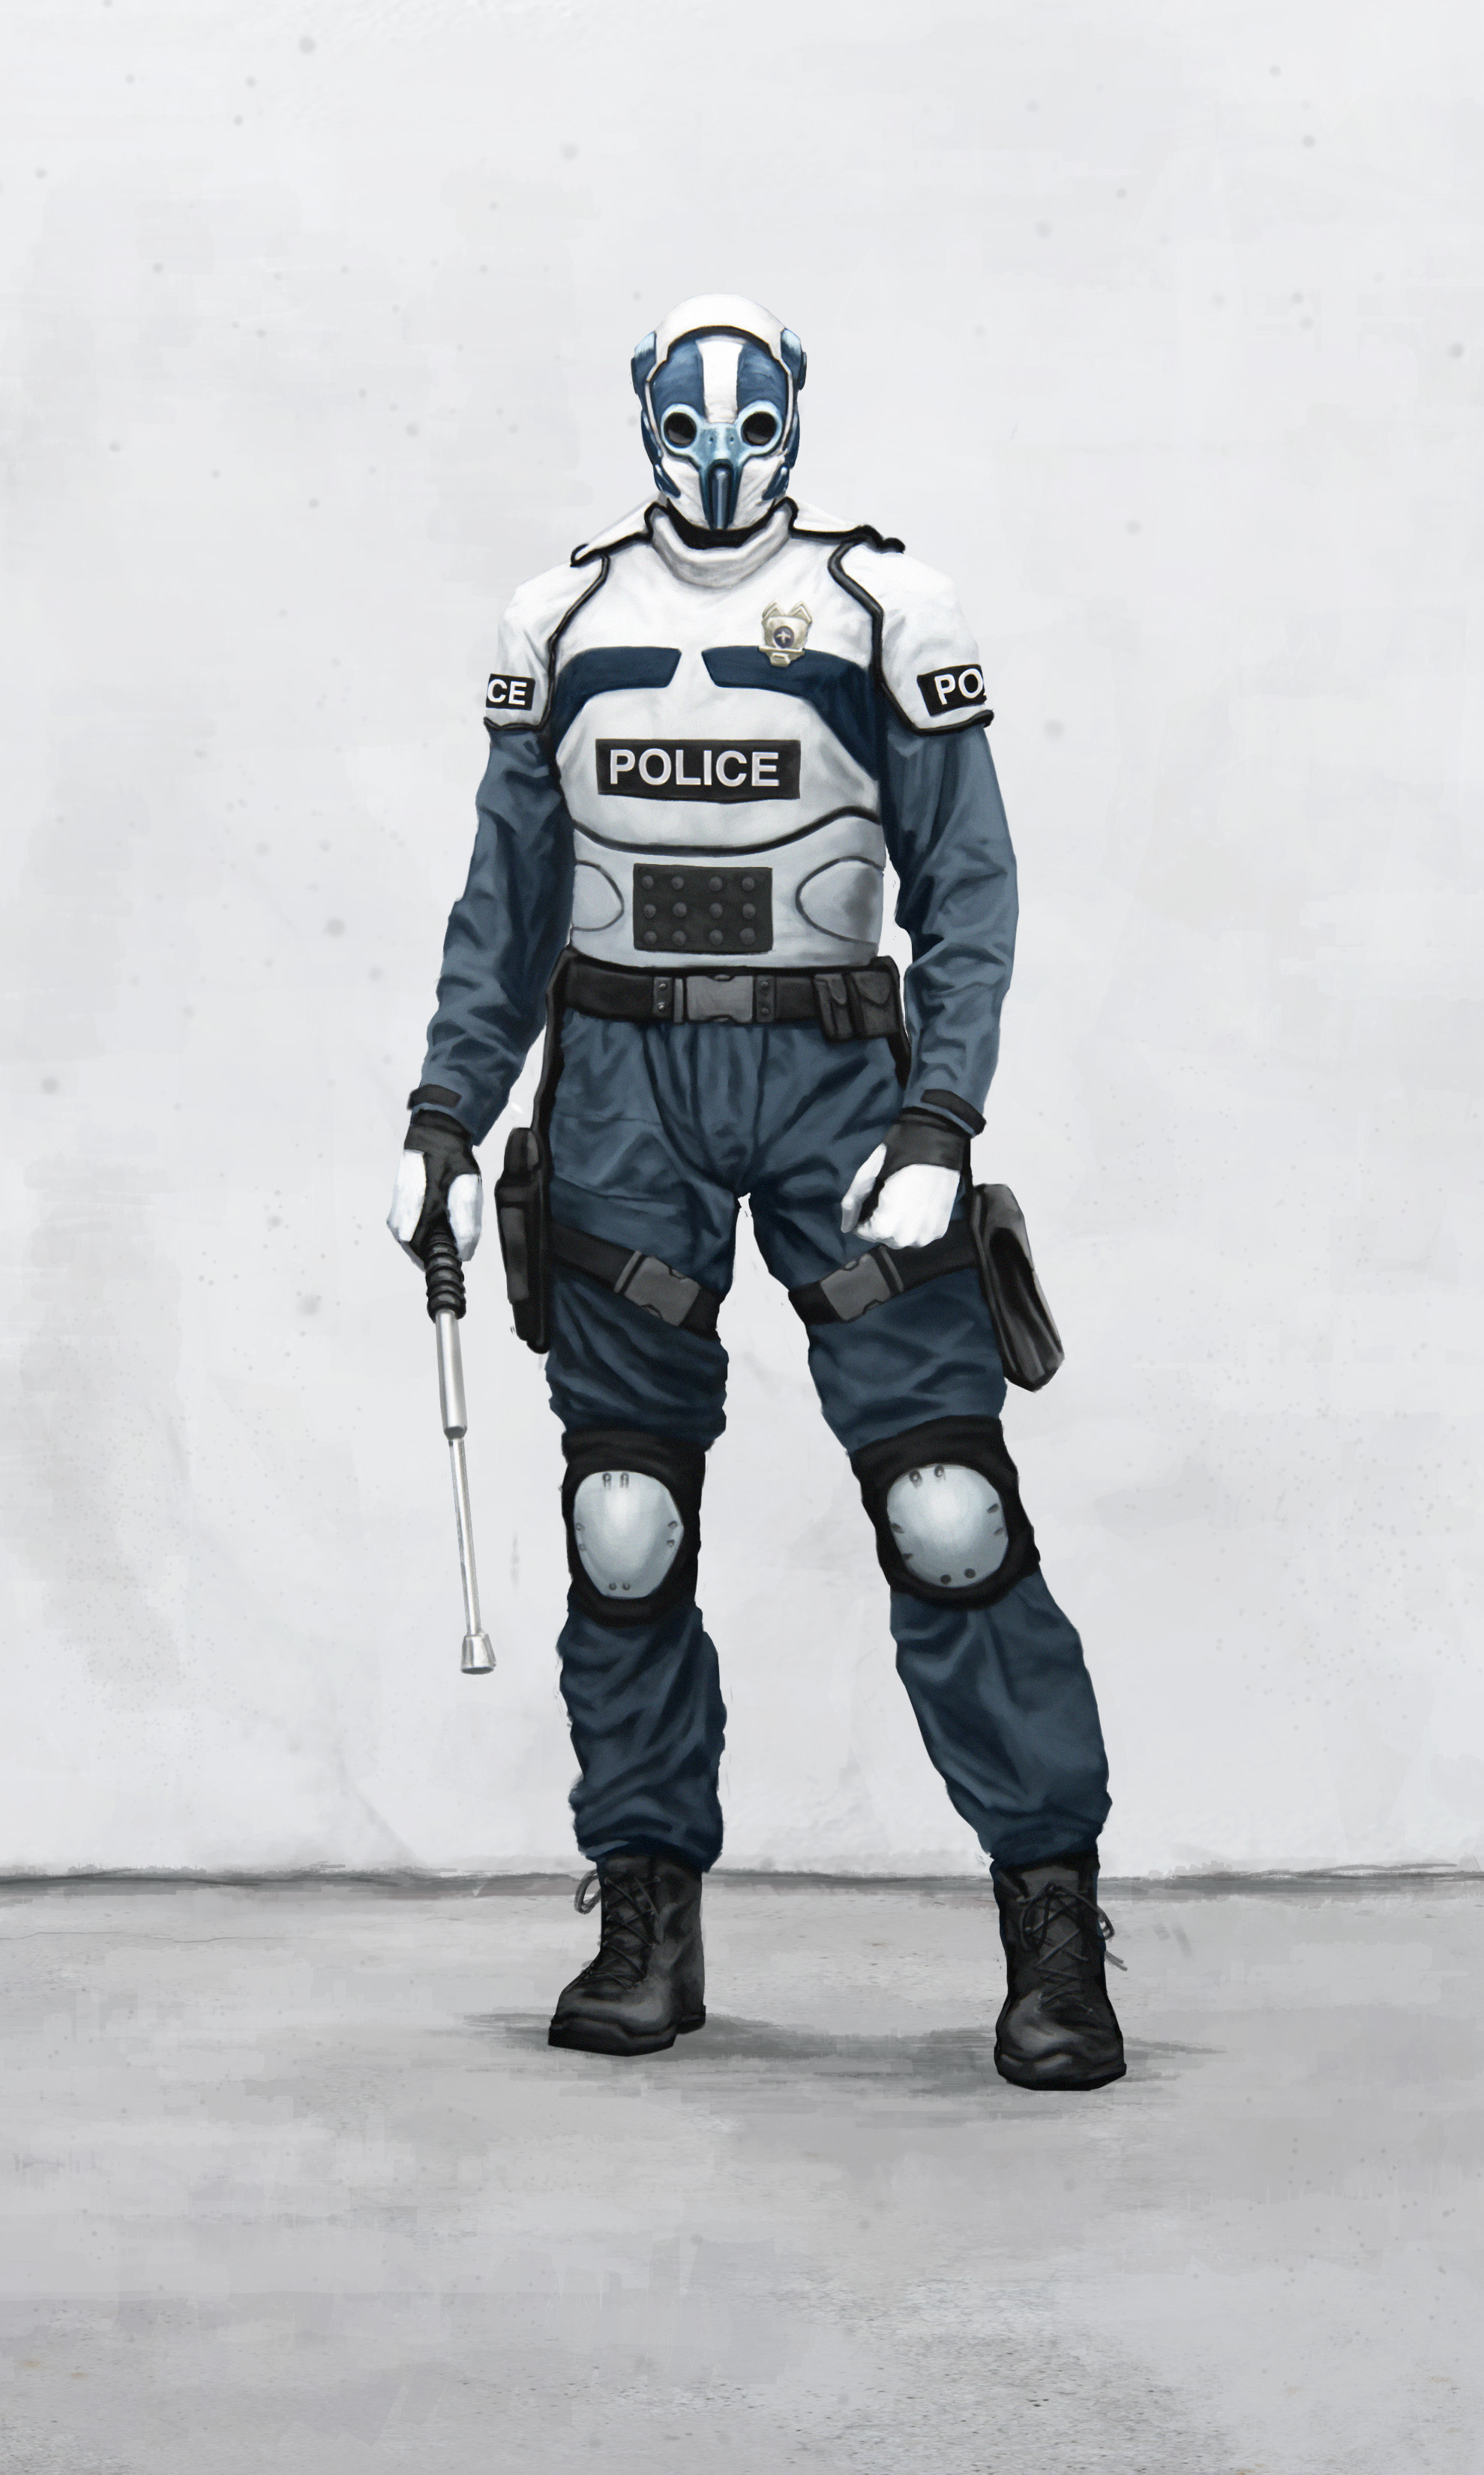 Police force by Fetscher